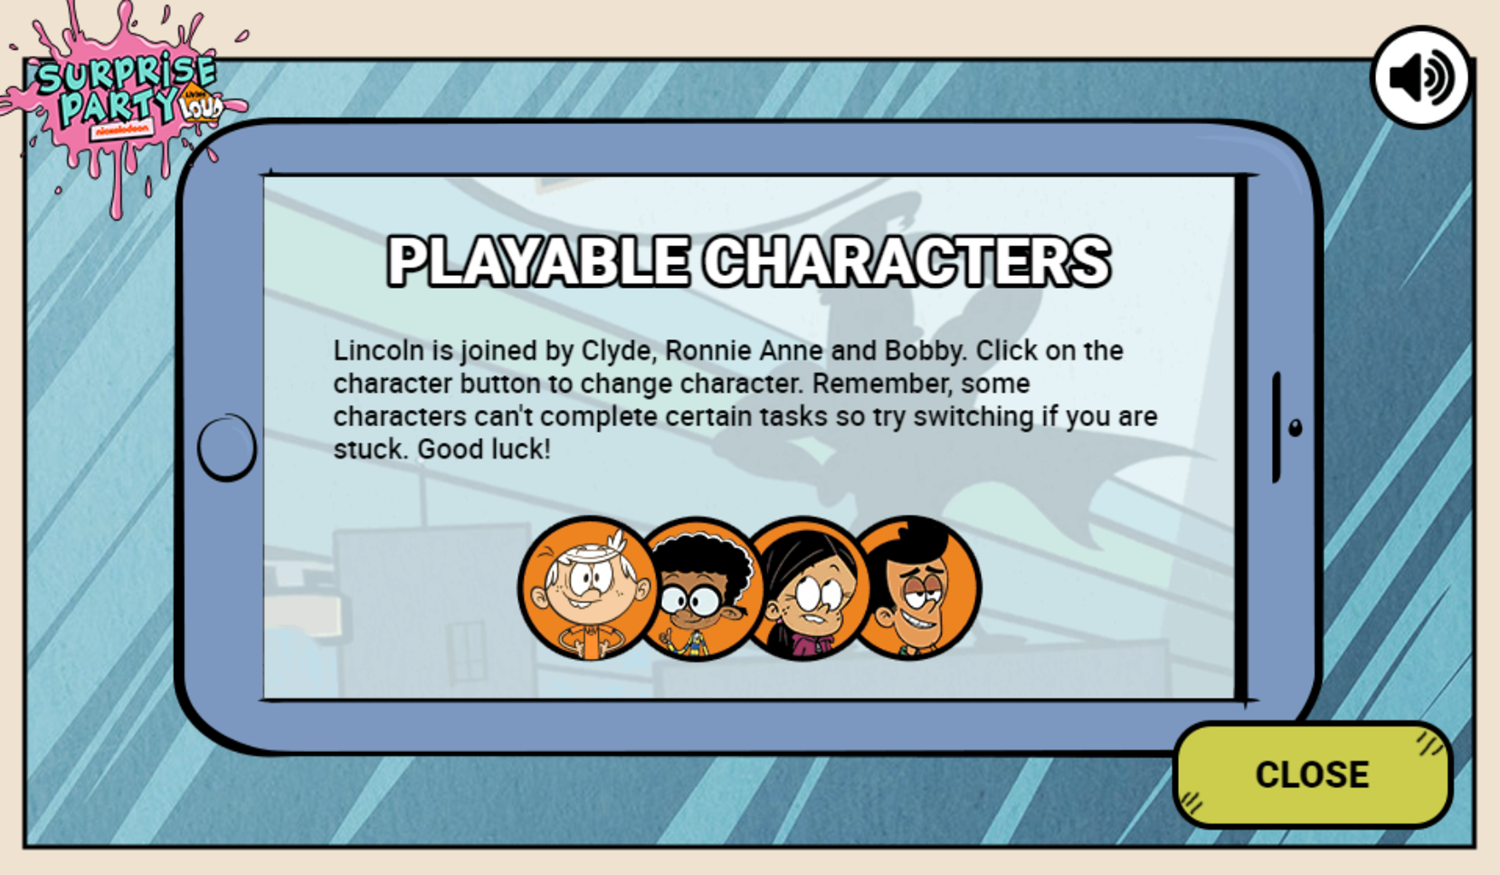 Loud House Surprise Party Game Characters Screenshot.